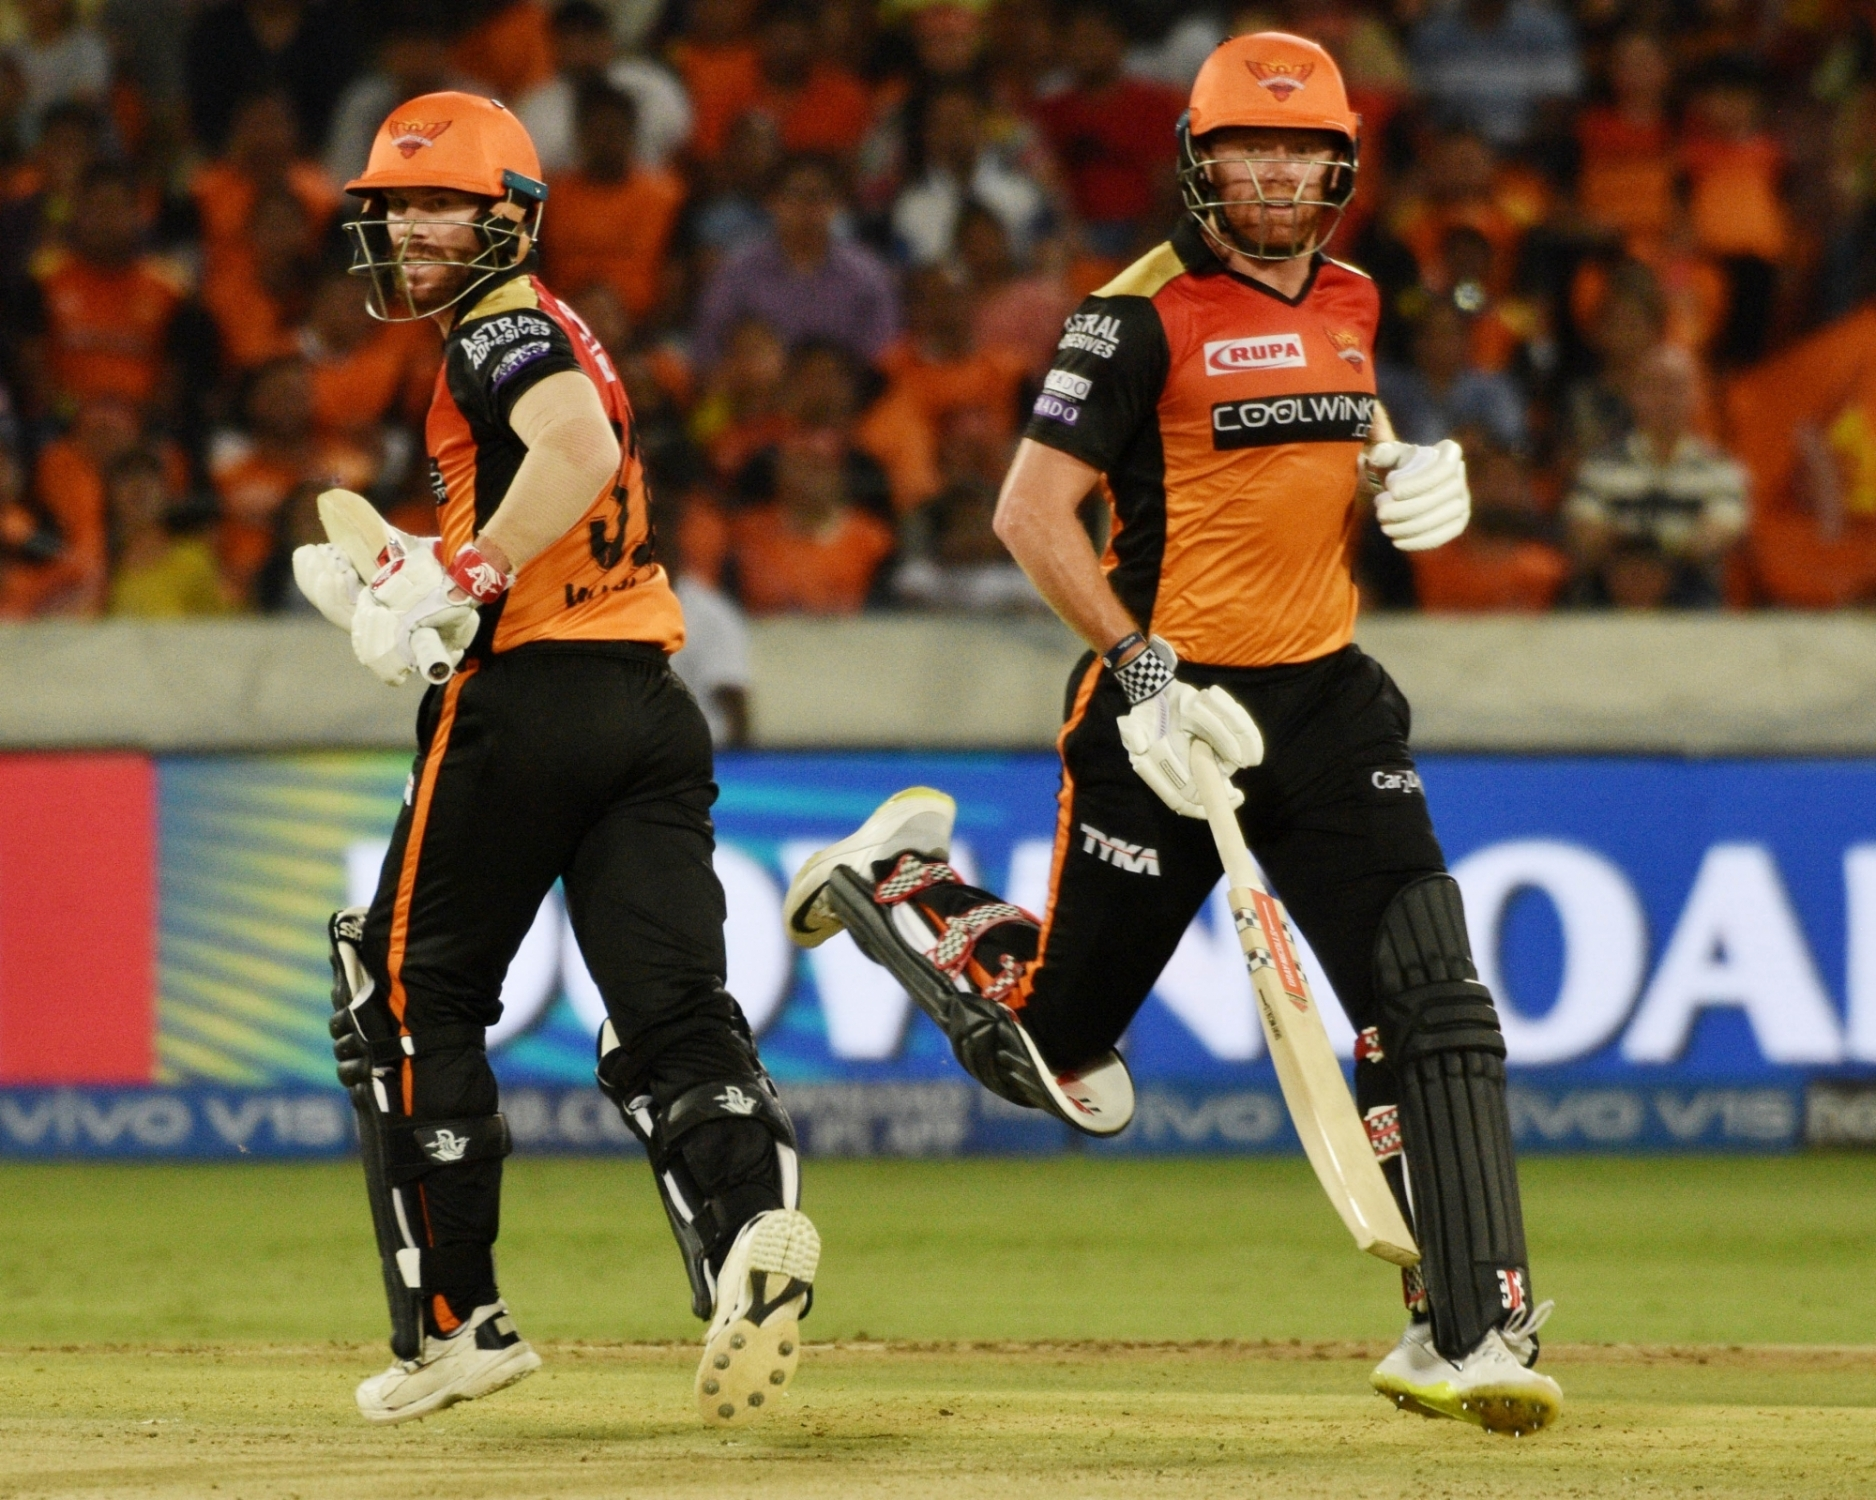 Sunrisers Hyderabad might not have Warner, Bairstow opening for the first week | IANS